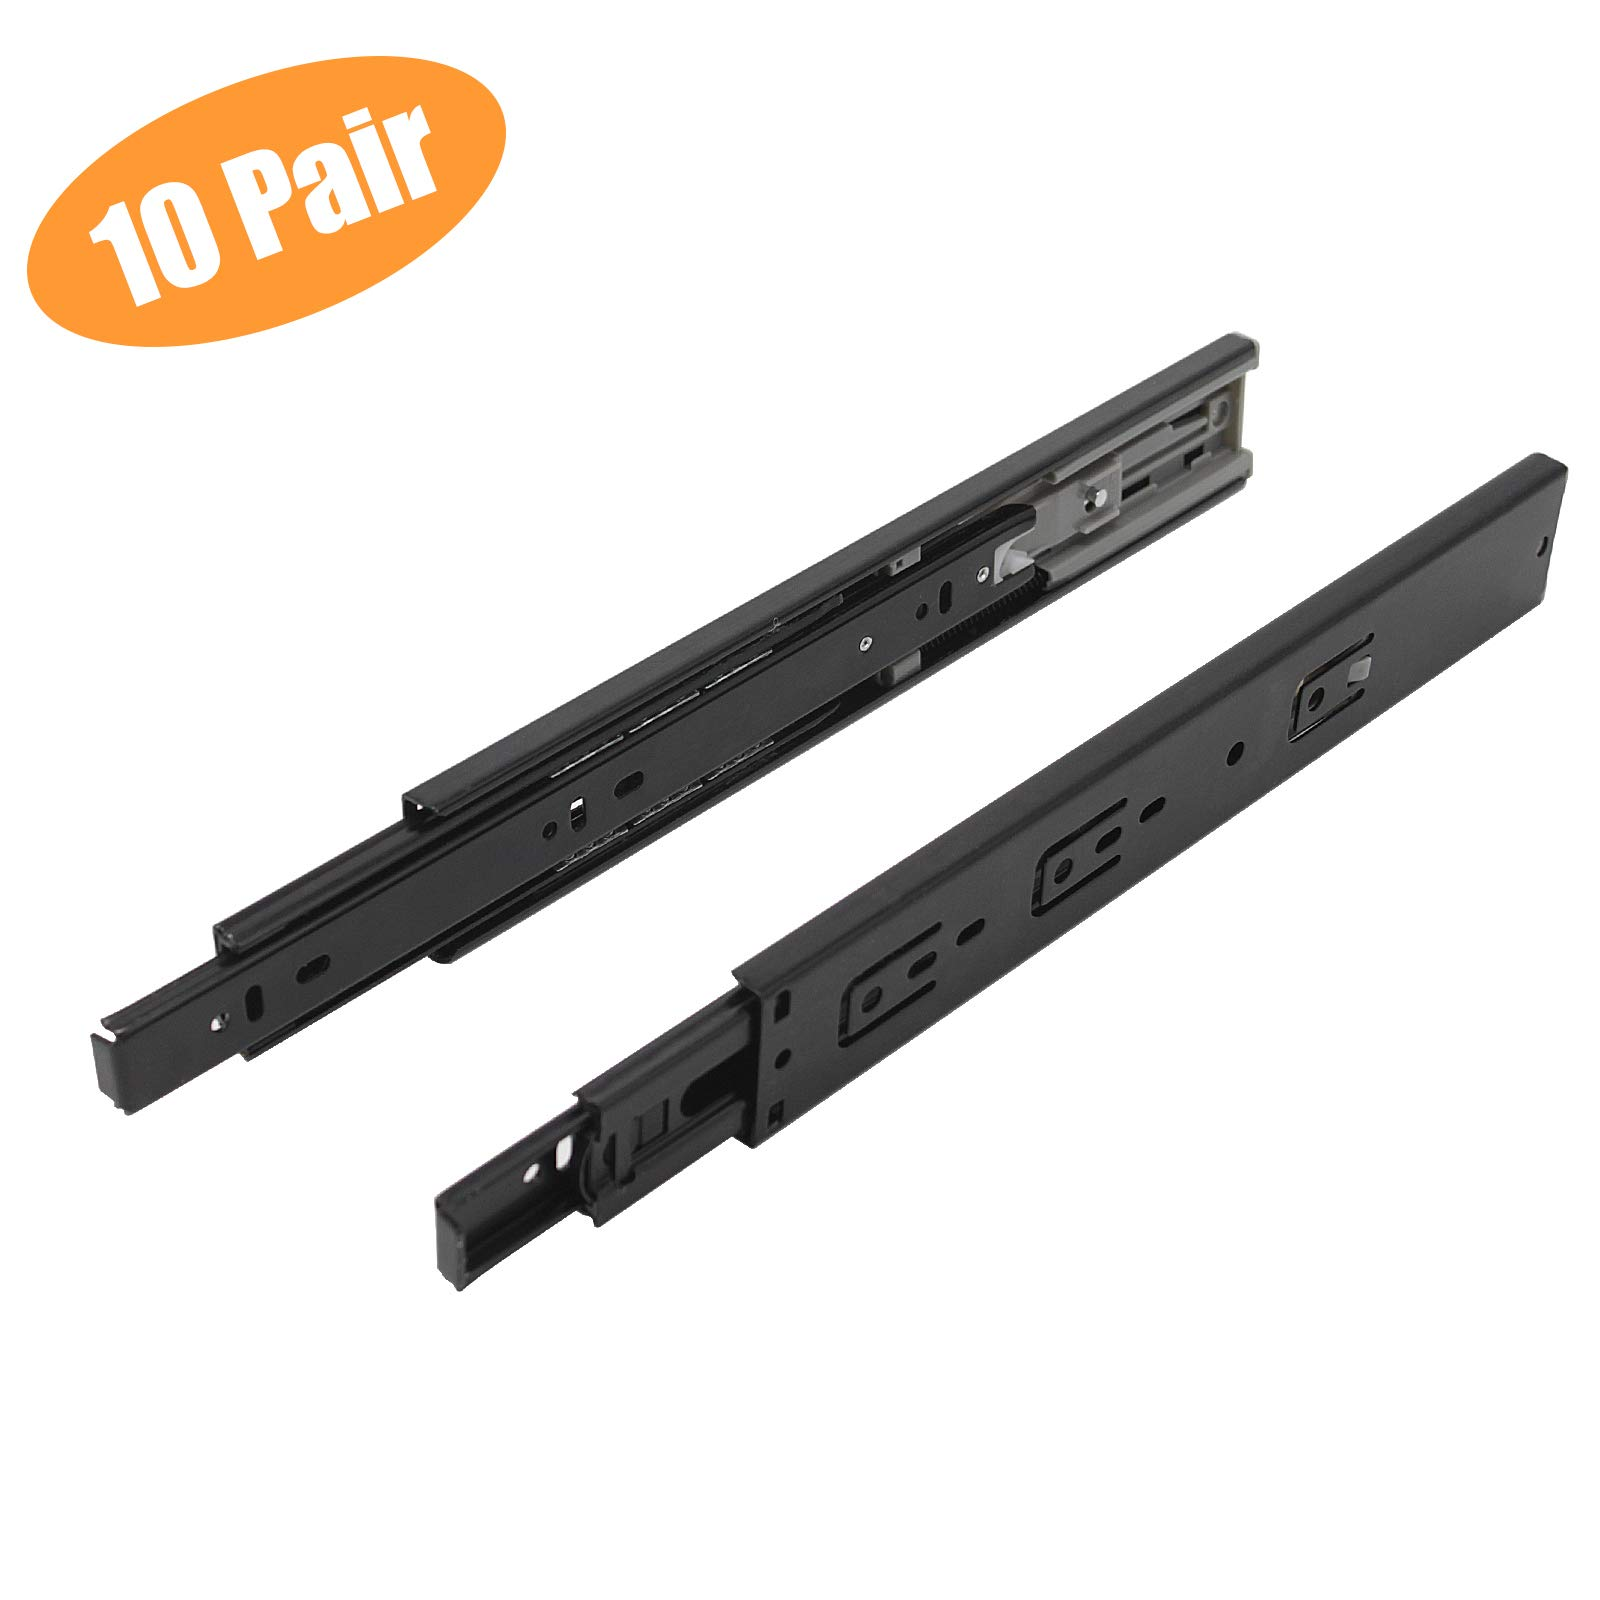 Probrico 10 Pair of 12 Inch Hardware Ball Bearing Side Mount Drawer Slides, Full Extension, Available in 12'',14'',16'',18'',20'',22'', 24'' Lengths by Probrico (Image #1)